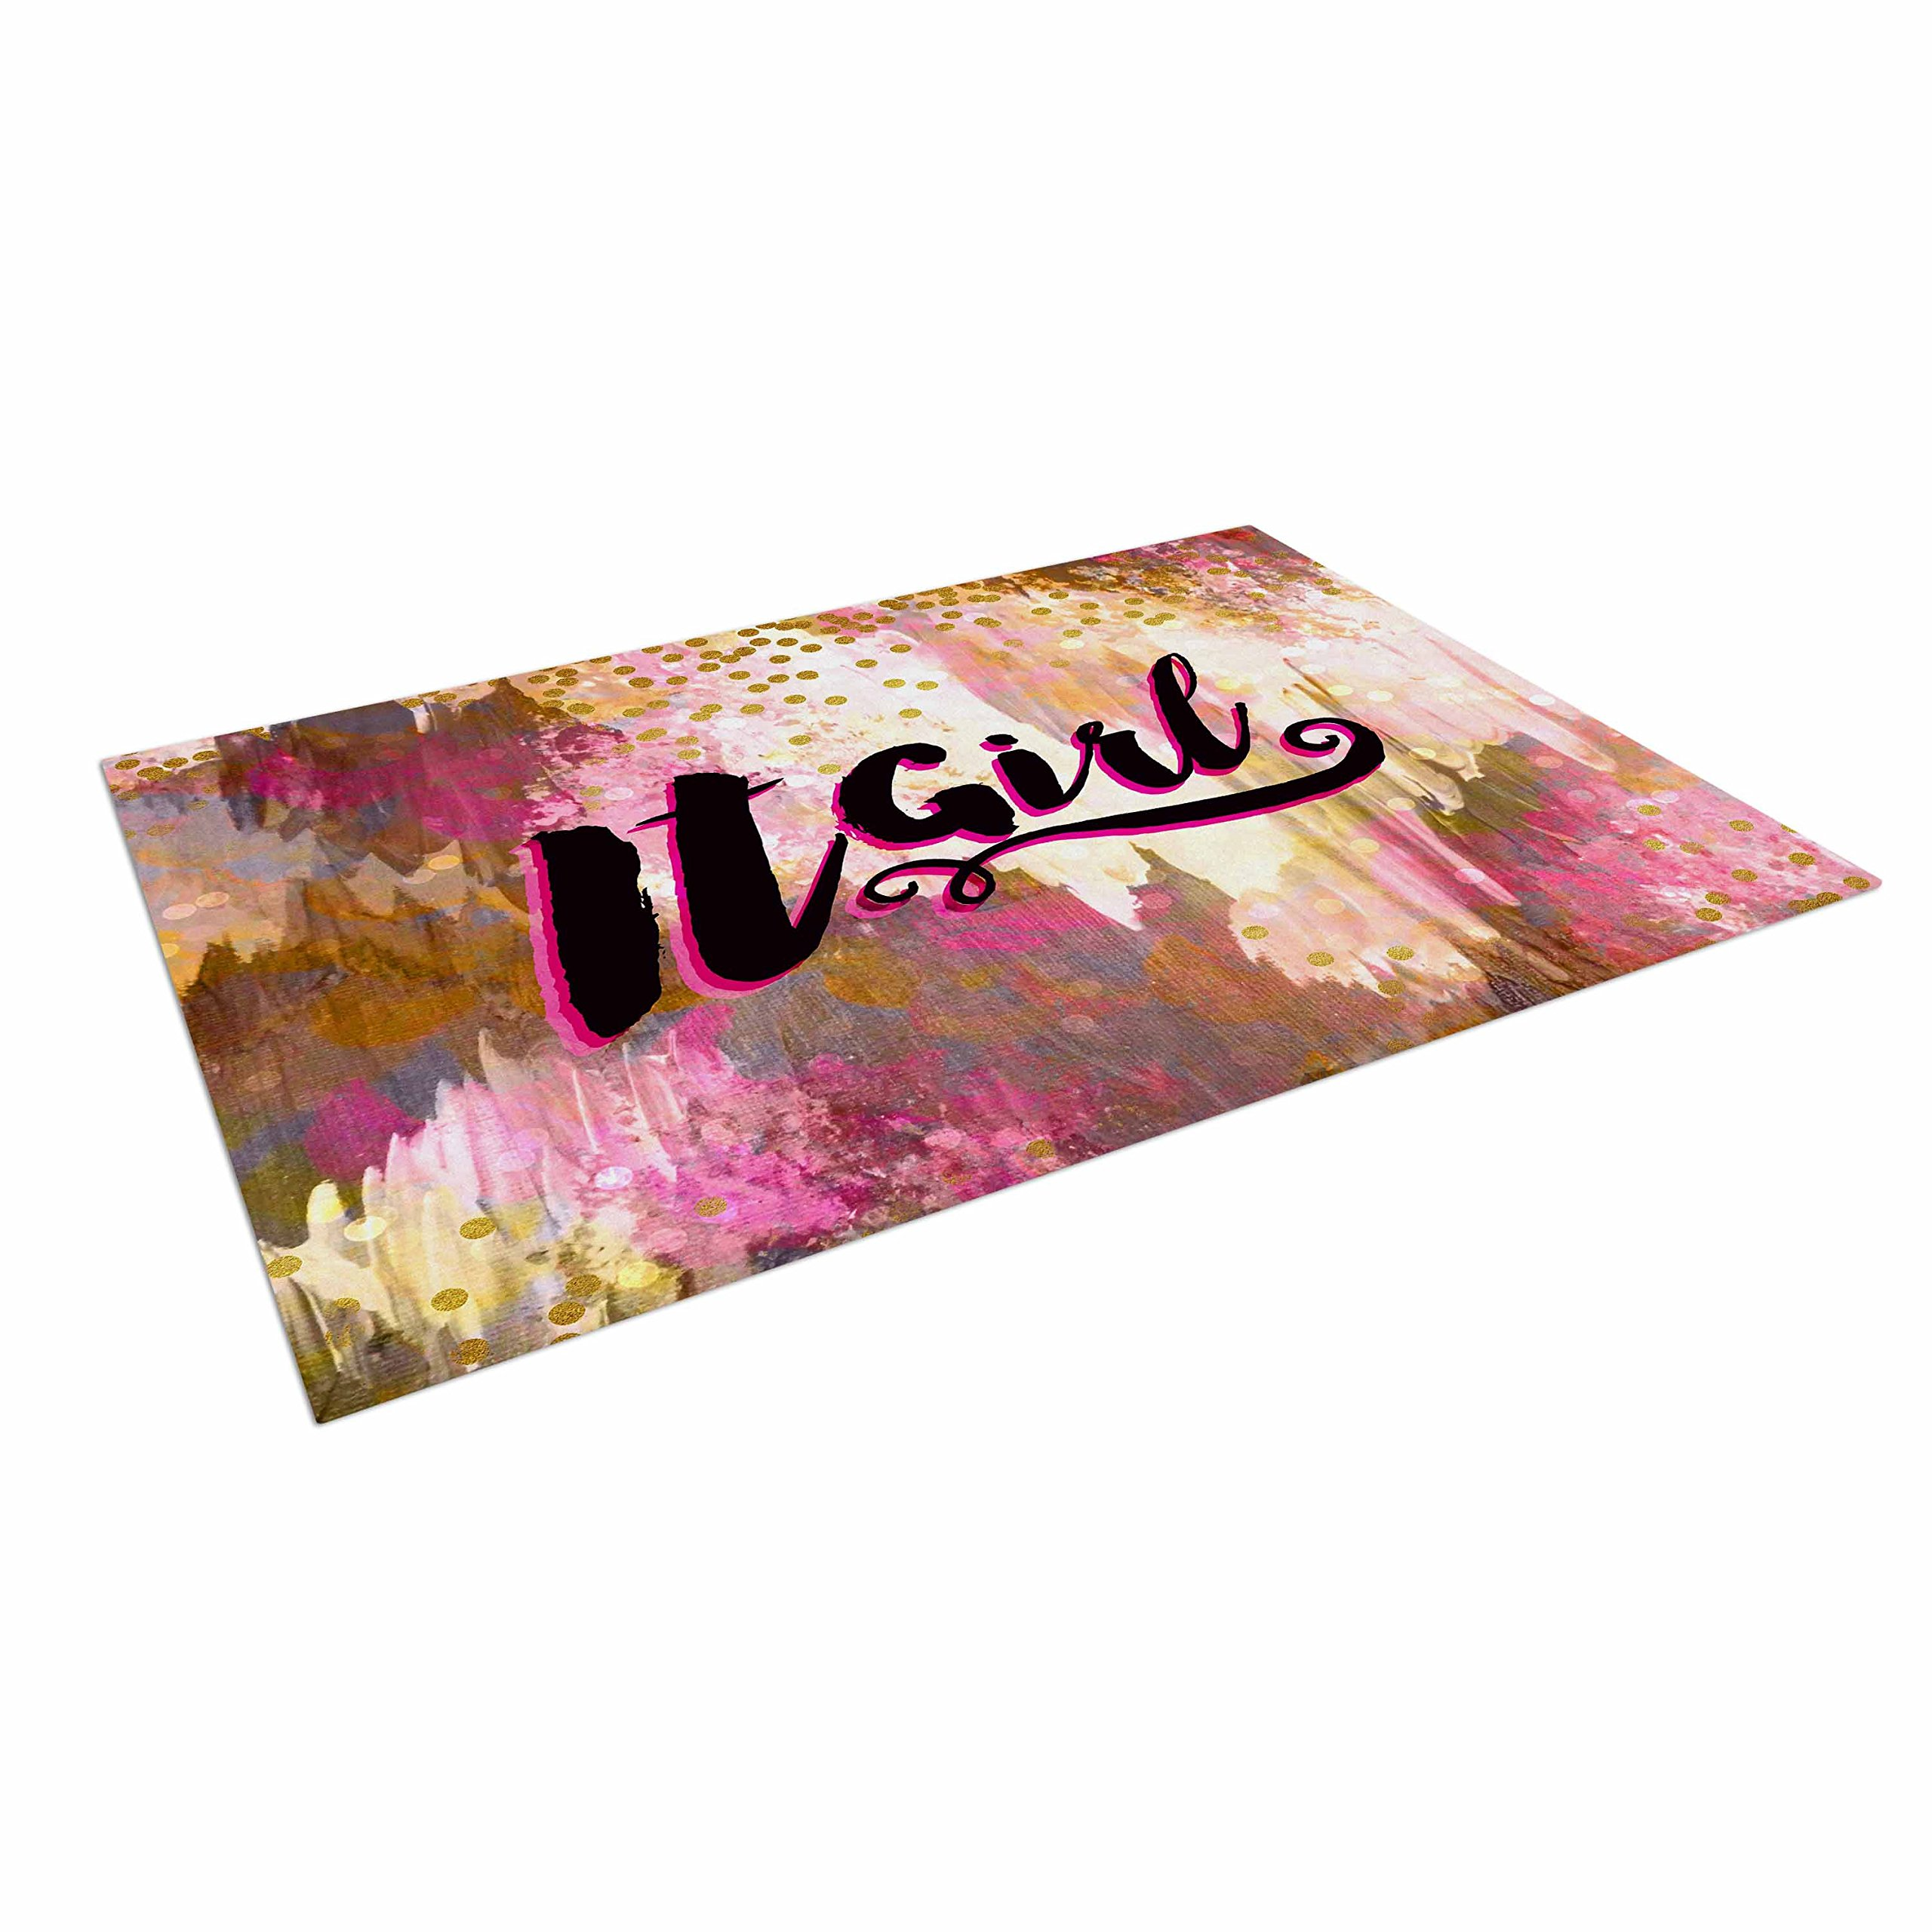 KESS InHouse Ebi Emporium ''It Girl-Black & Pink'' Black Outdoor Floor Mat, 4' x 5'